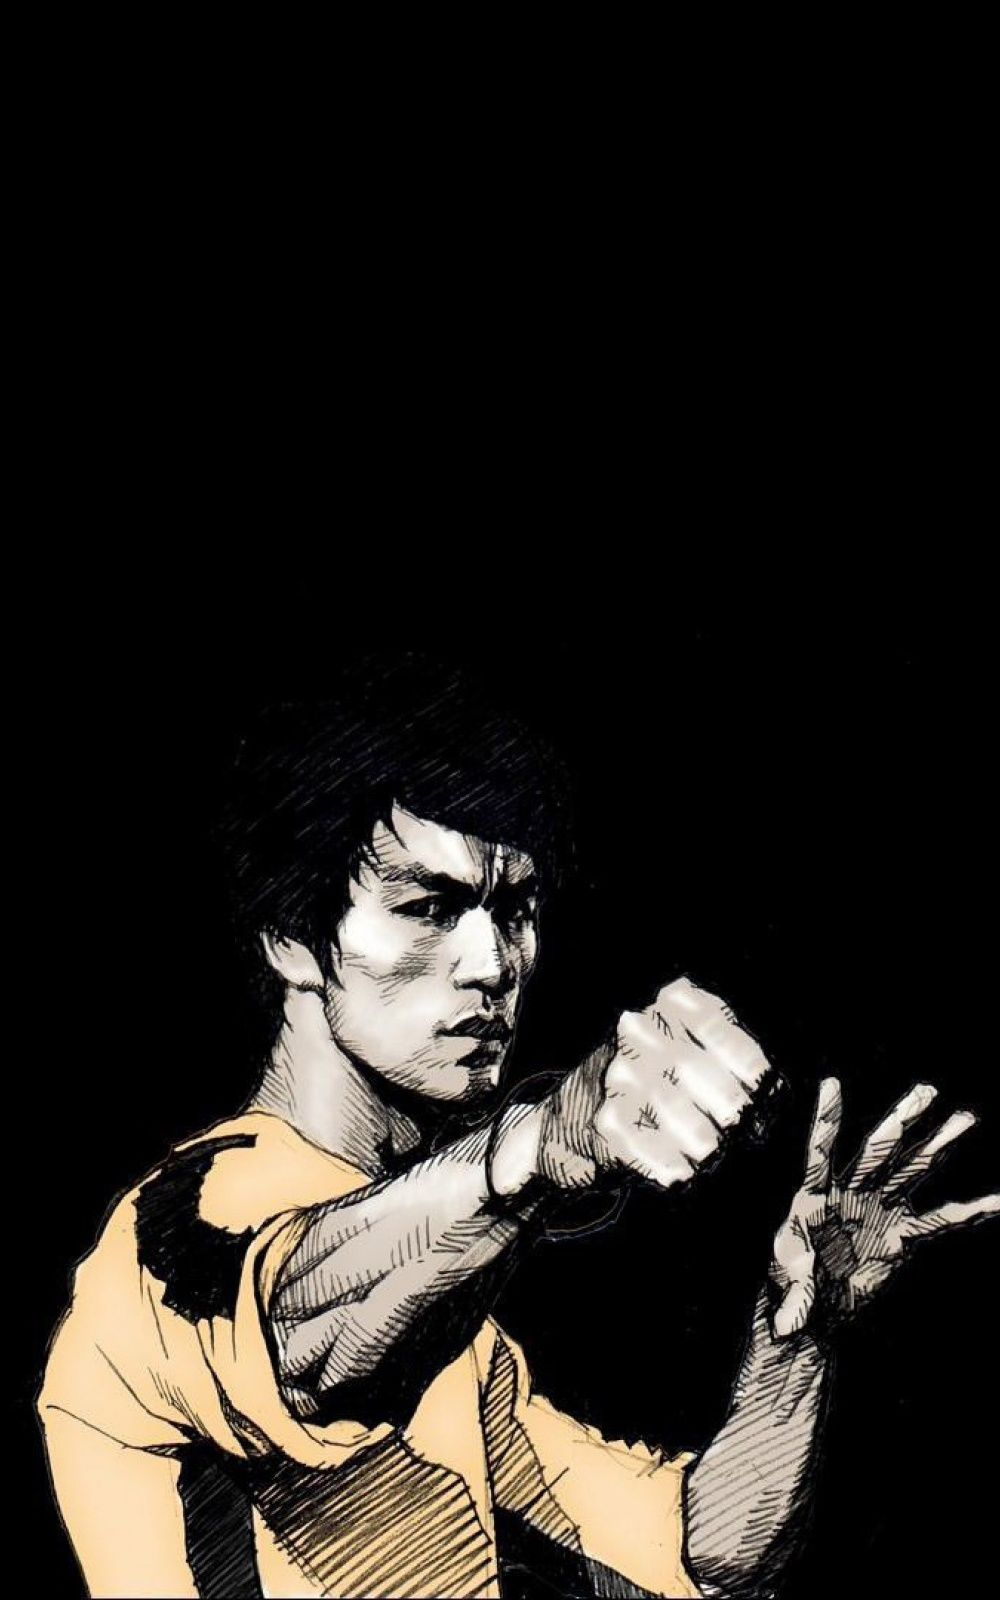 Bruce Lee Punch Iphone 6 Plus Hd Wallpaper Bruce Lee Android